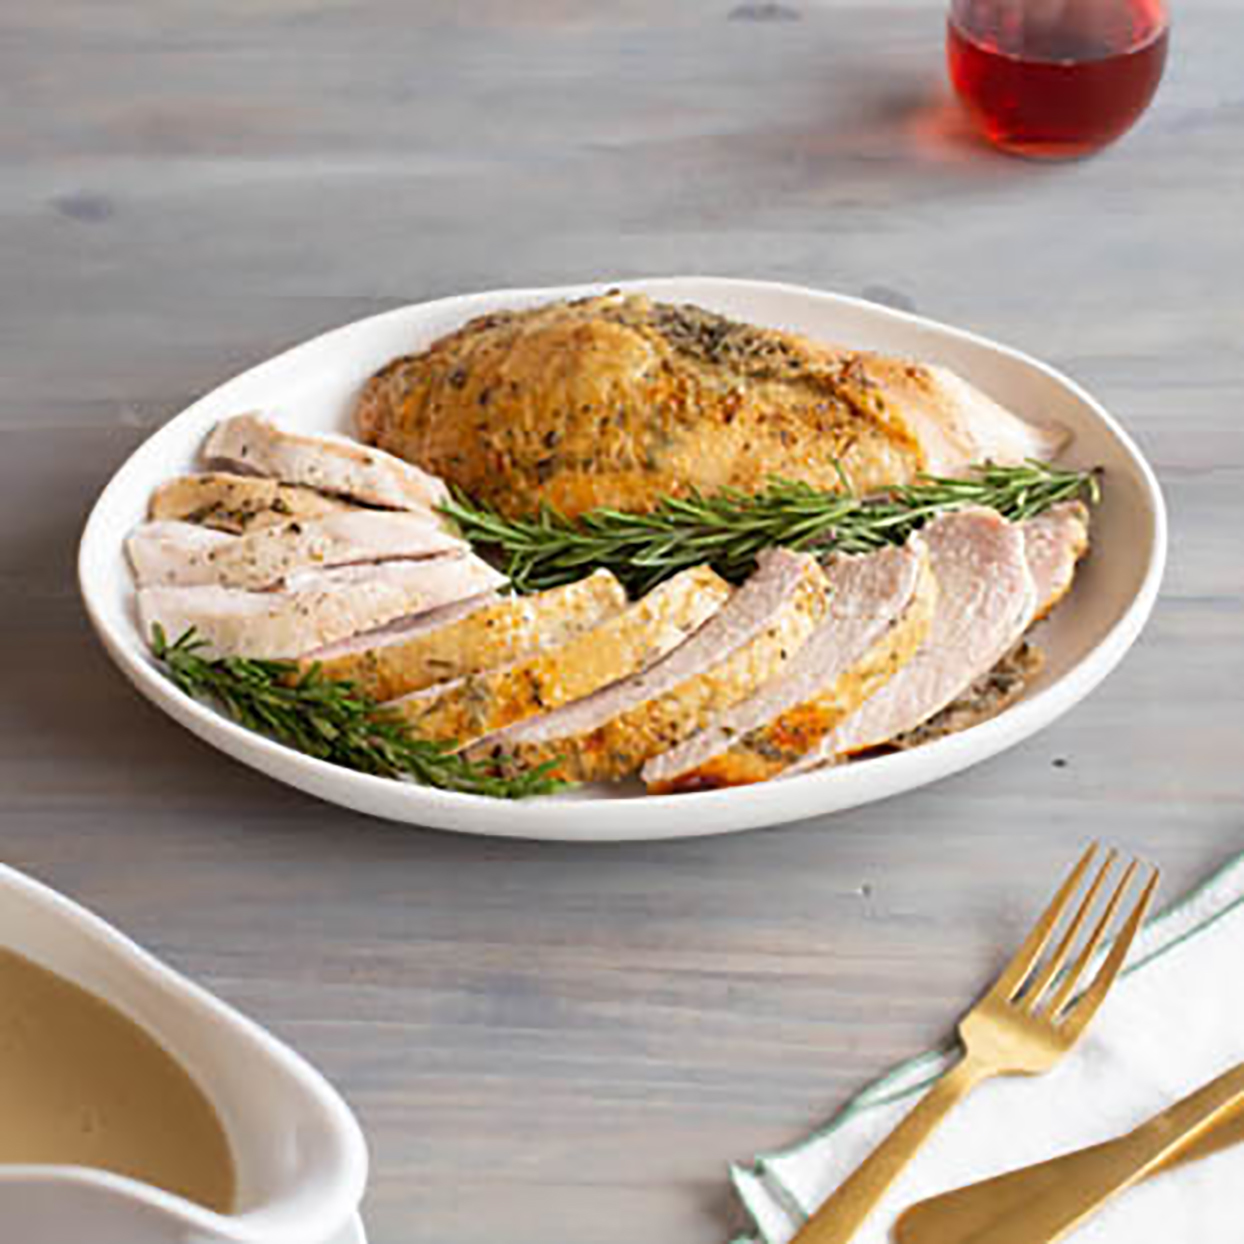 Slow-Cooker Turkey Breast Trusted Brands